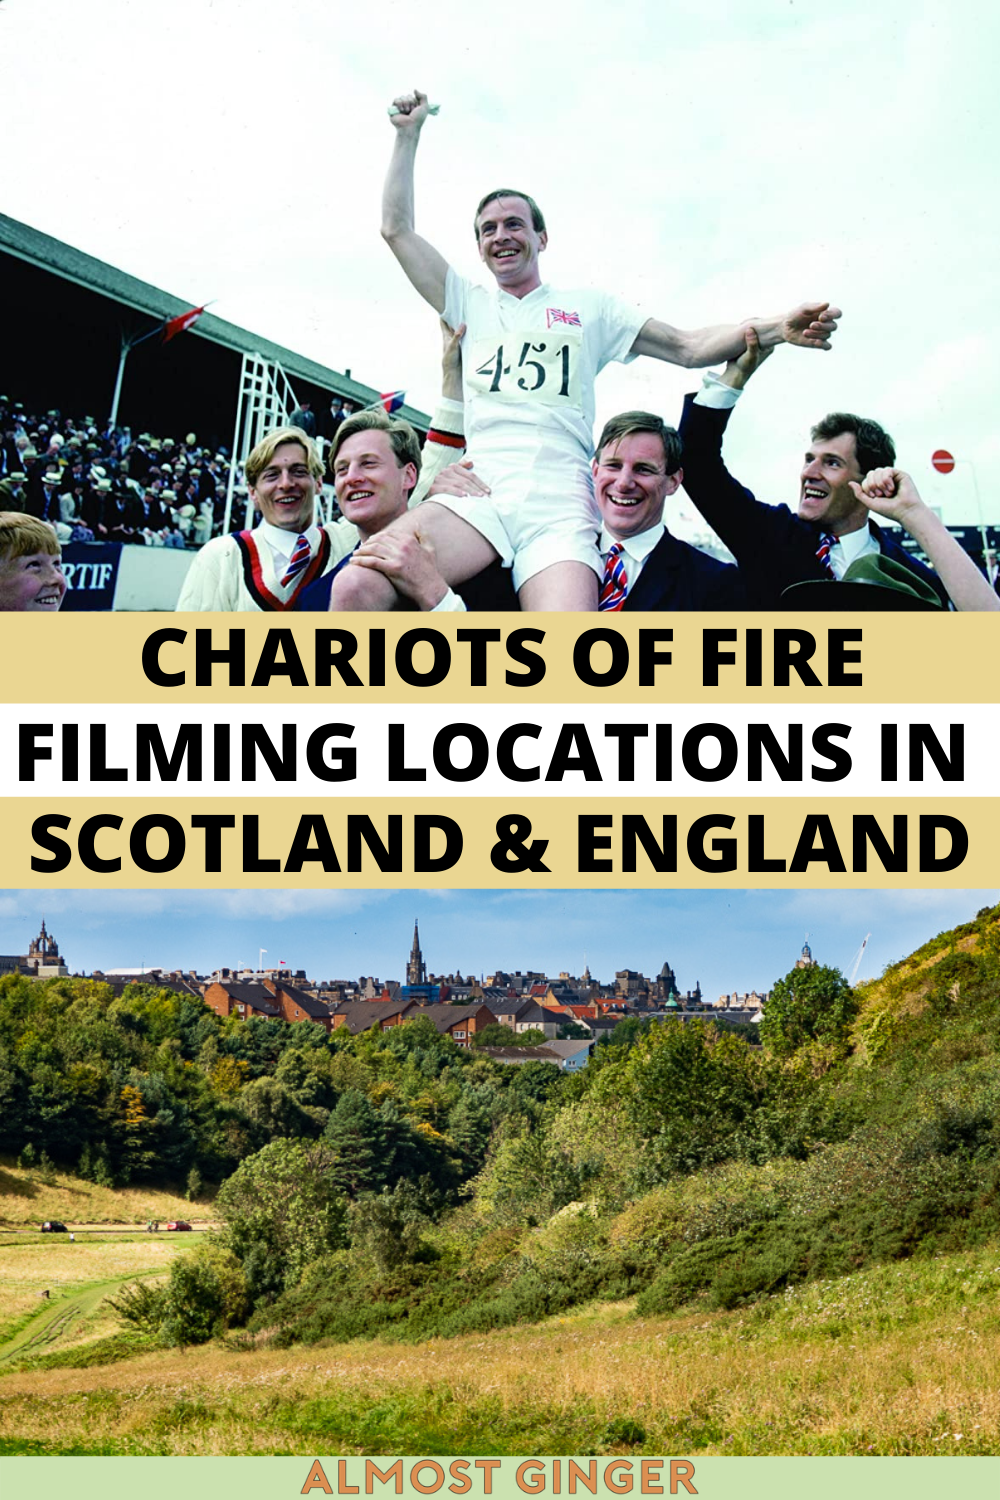 Chariots of Fire Film Locations in Scotland & England | almostginger.com